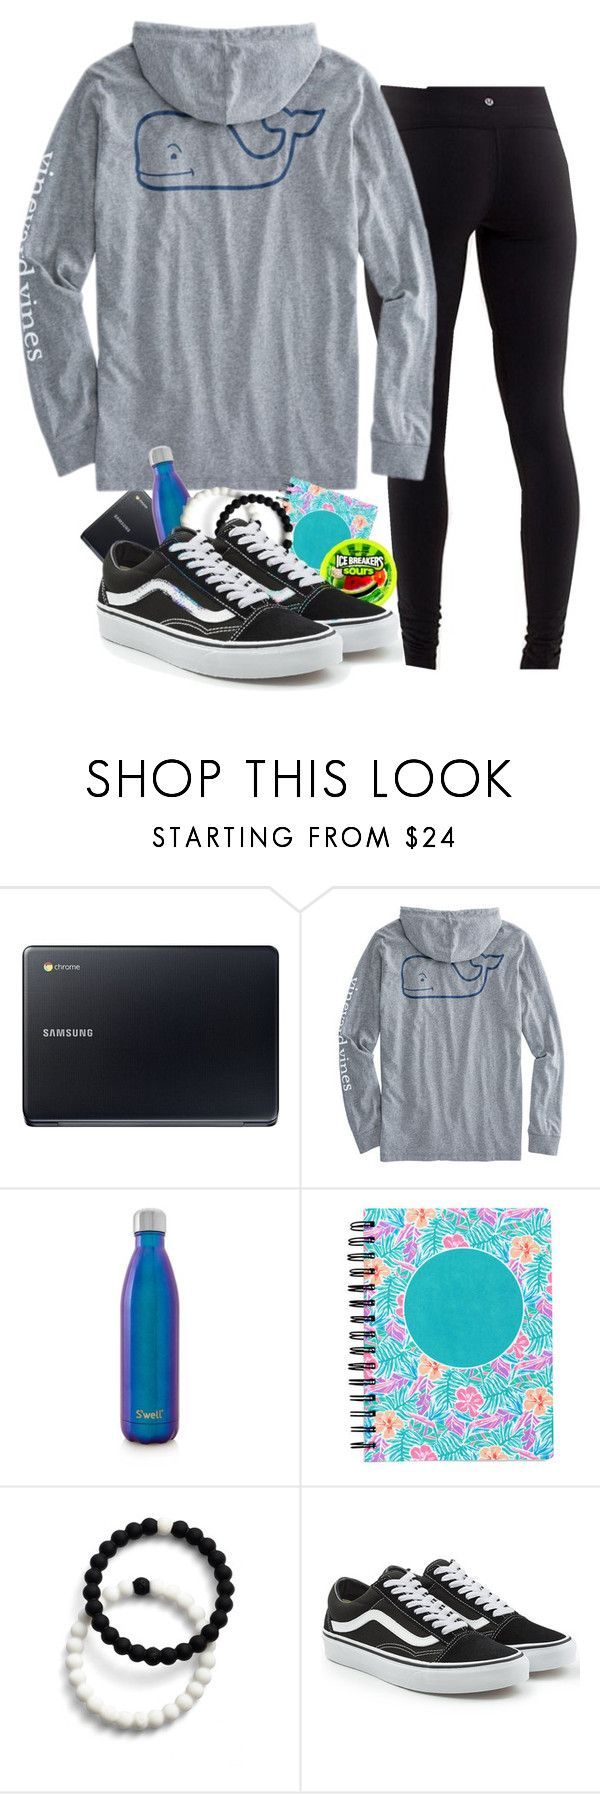 """why do ppl at my school have literally everything?"" by lorla3407 on Polyvore featuring Samsung, S'well, Lokai and Vans #schooloutfits"